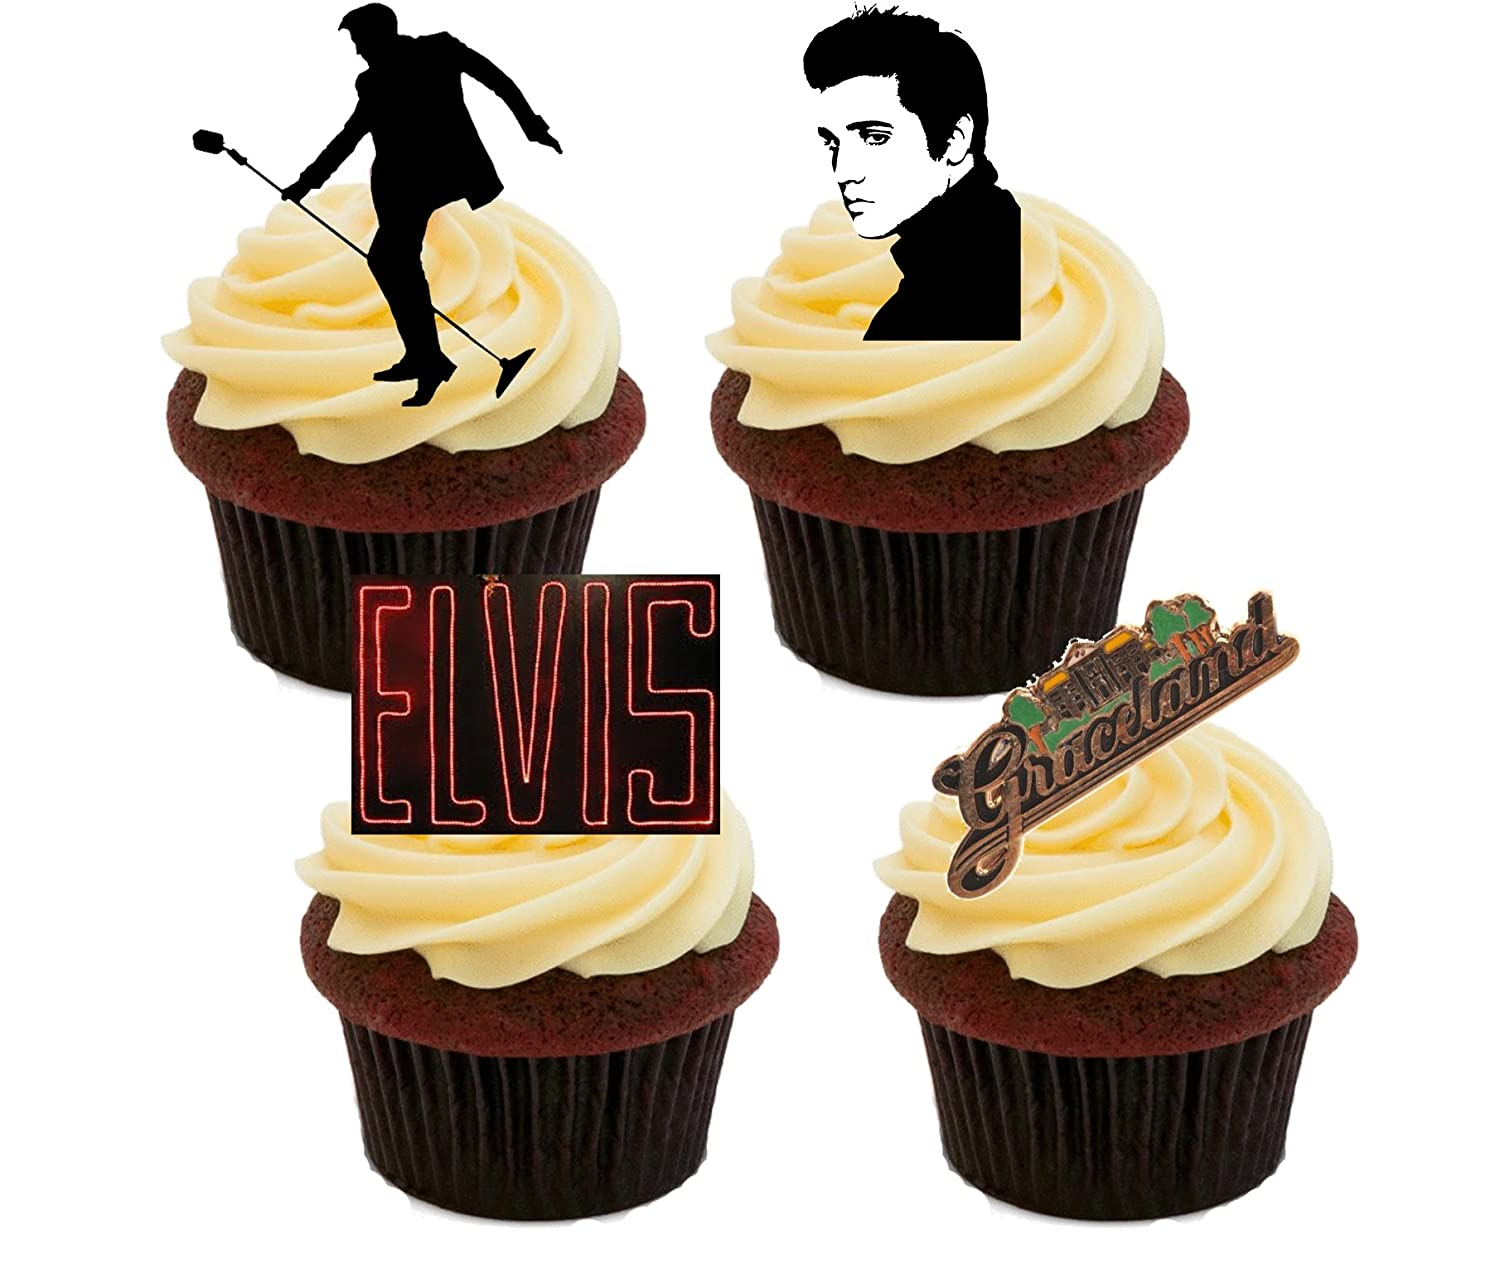 Lot of 12 Elvis Cupcake Toppers!